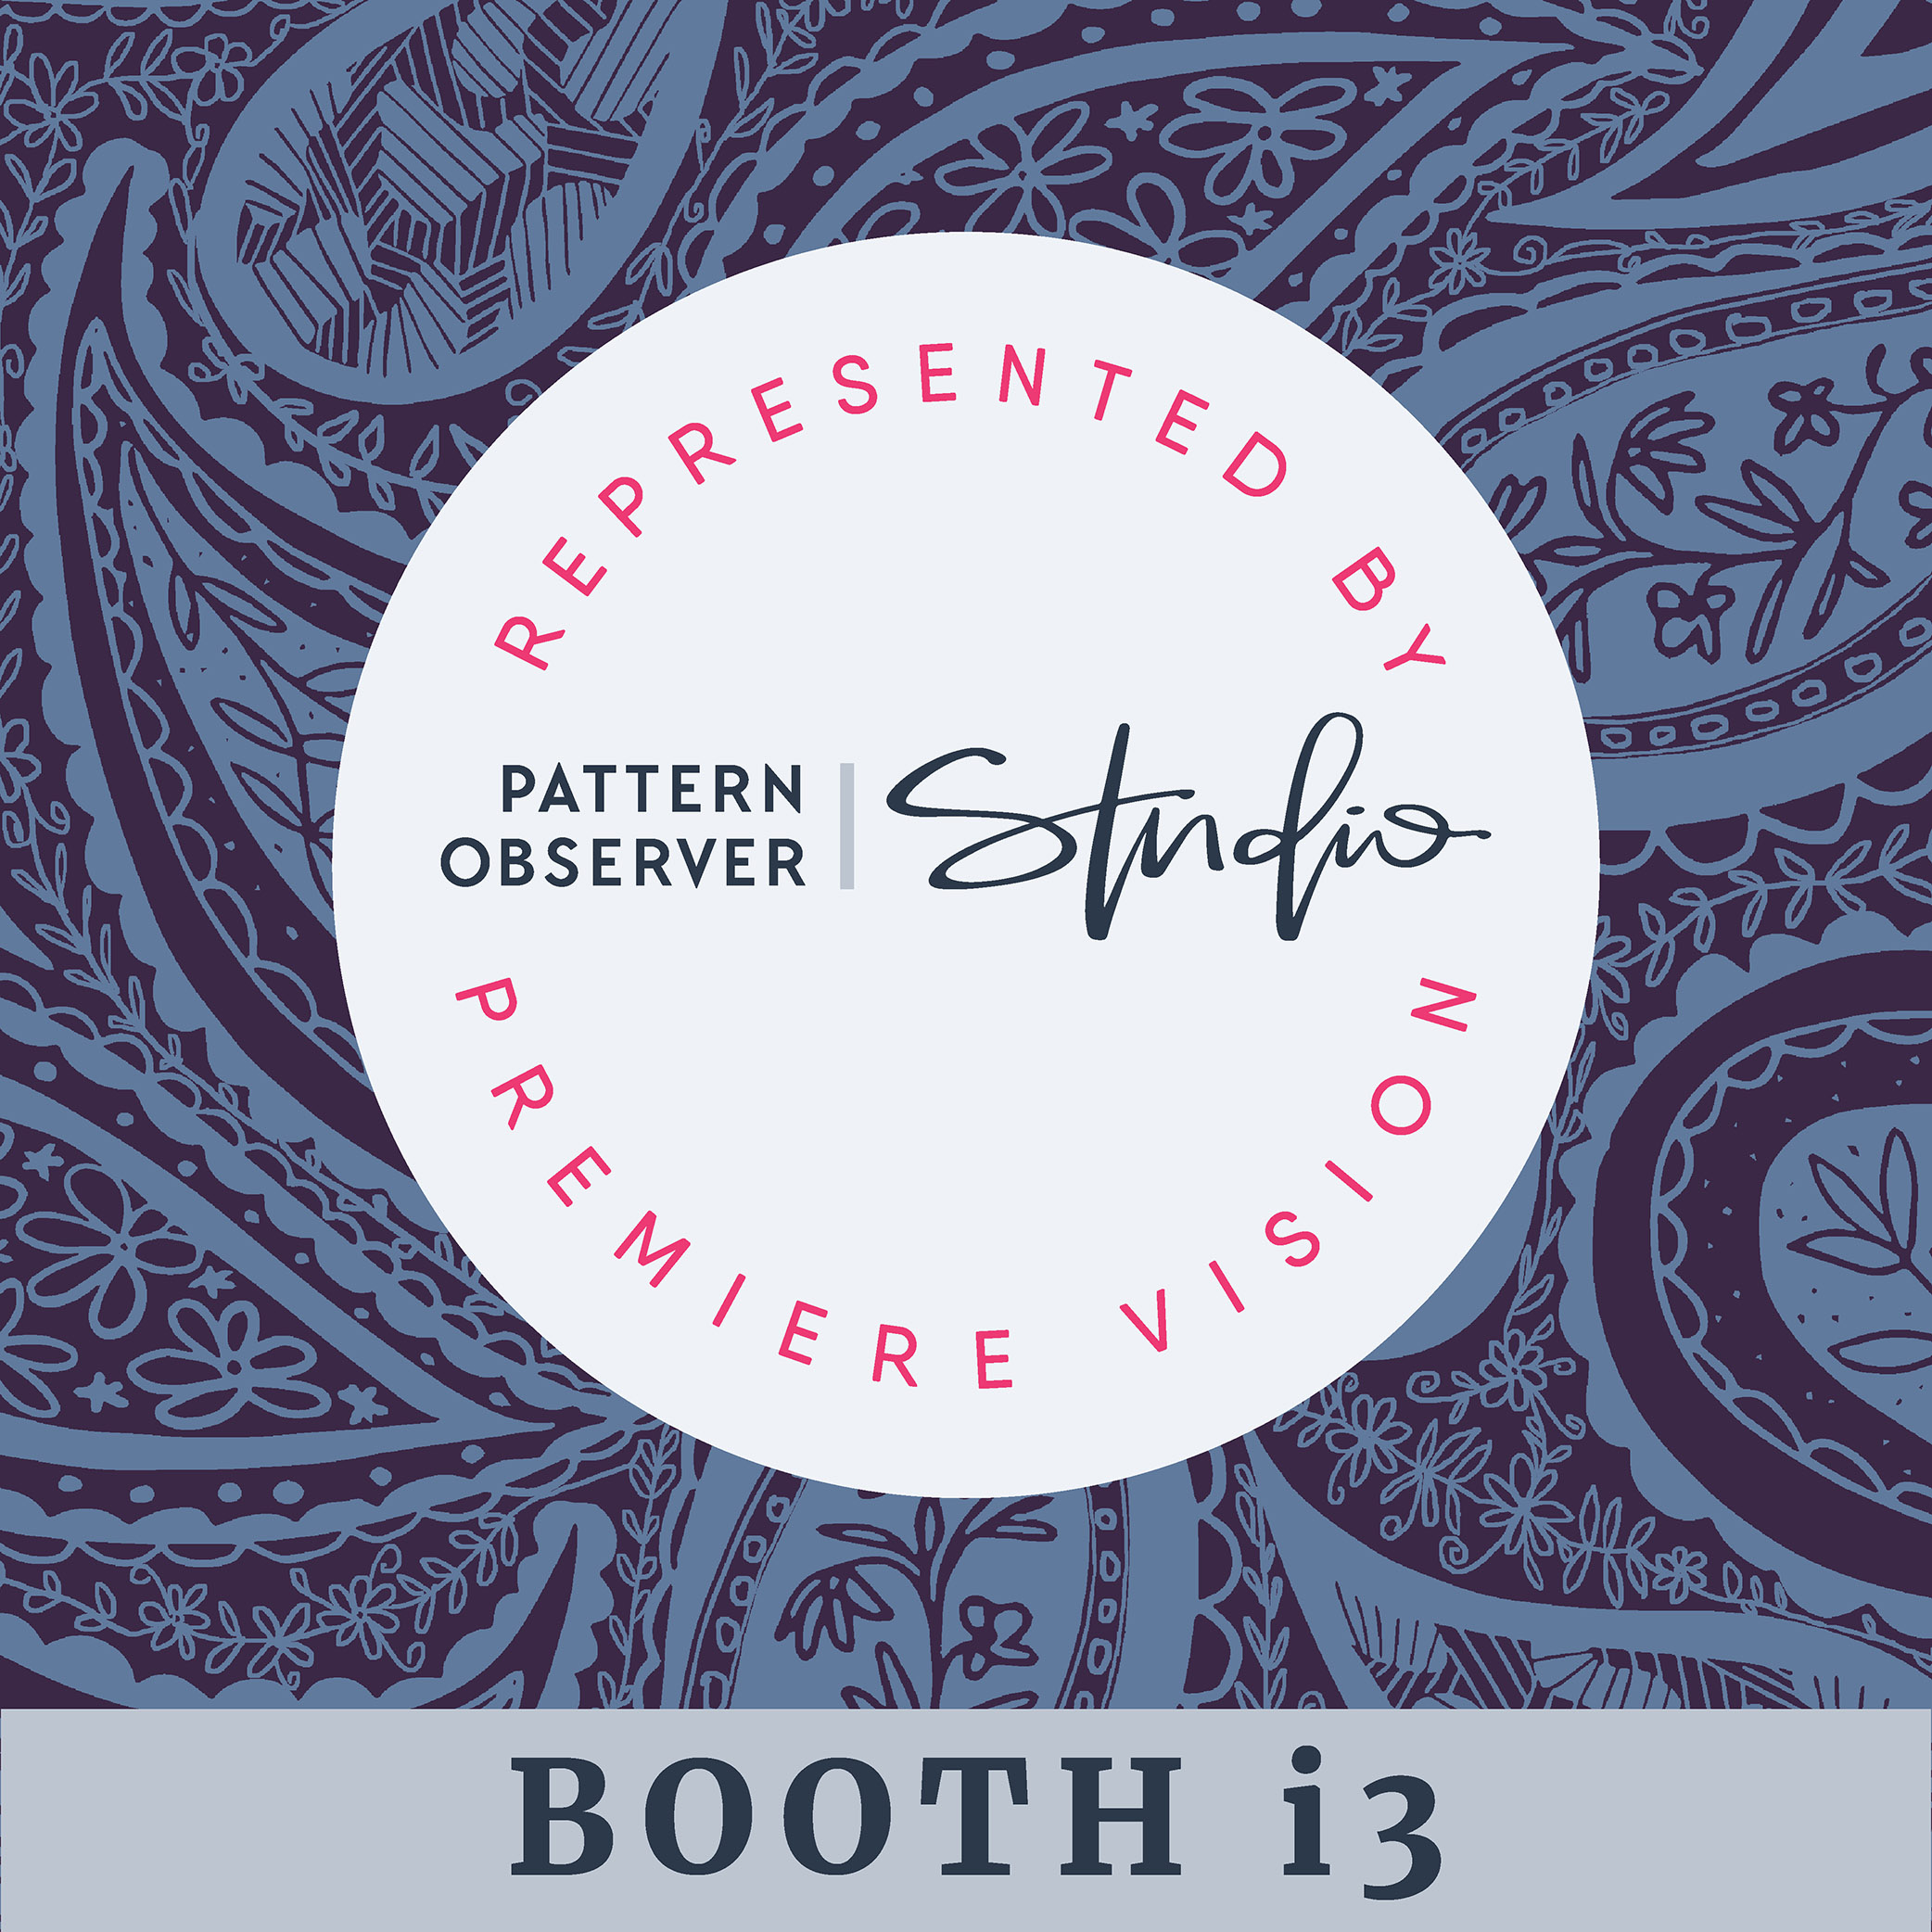 Bova Creative represented by Pattern Observer Studio at Premiere Vision 2019